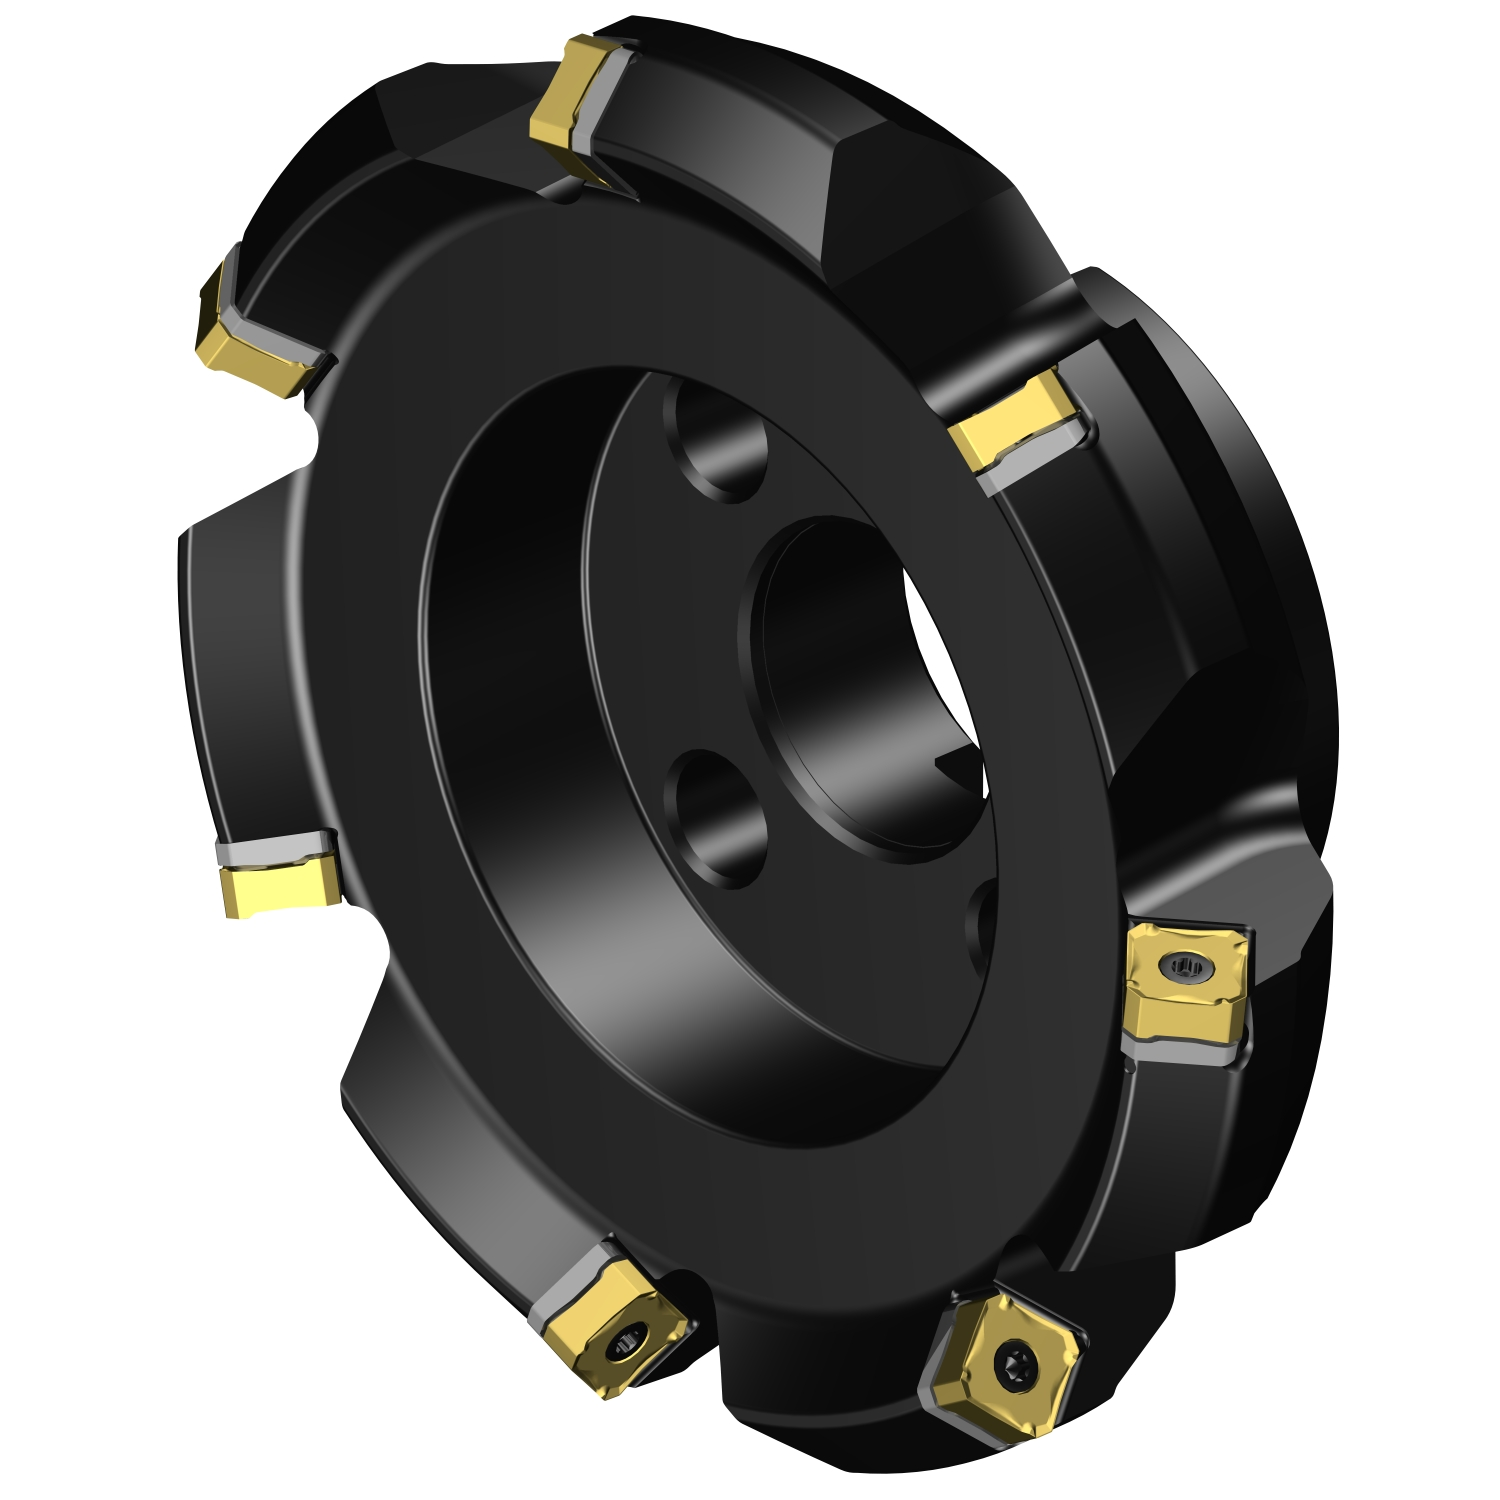 A345-152R38-13L - Holders, Adapters & Heads